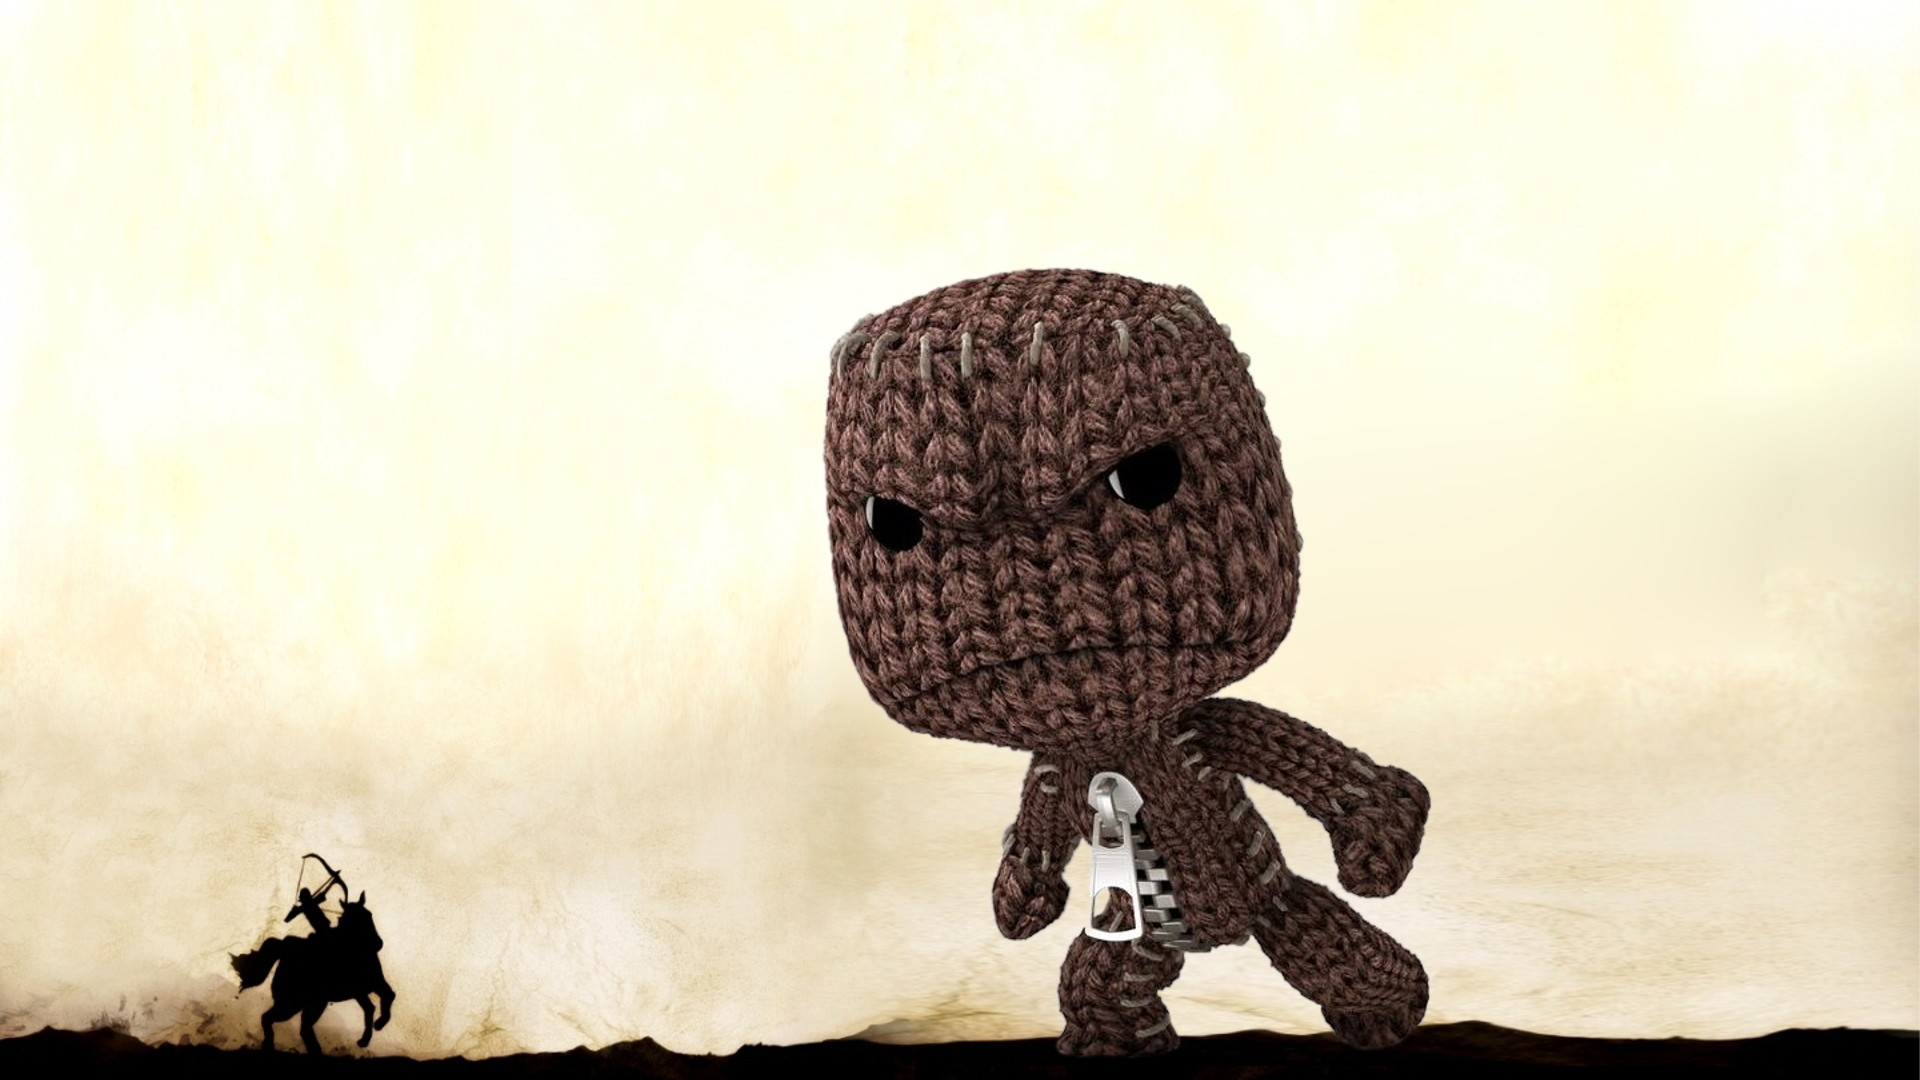 Little Big Planet Sackboy Shadow of the Colossus wallpaper | |  213323 | WallpaperUP